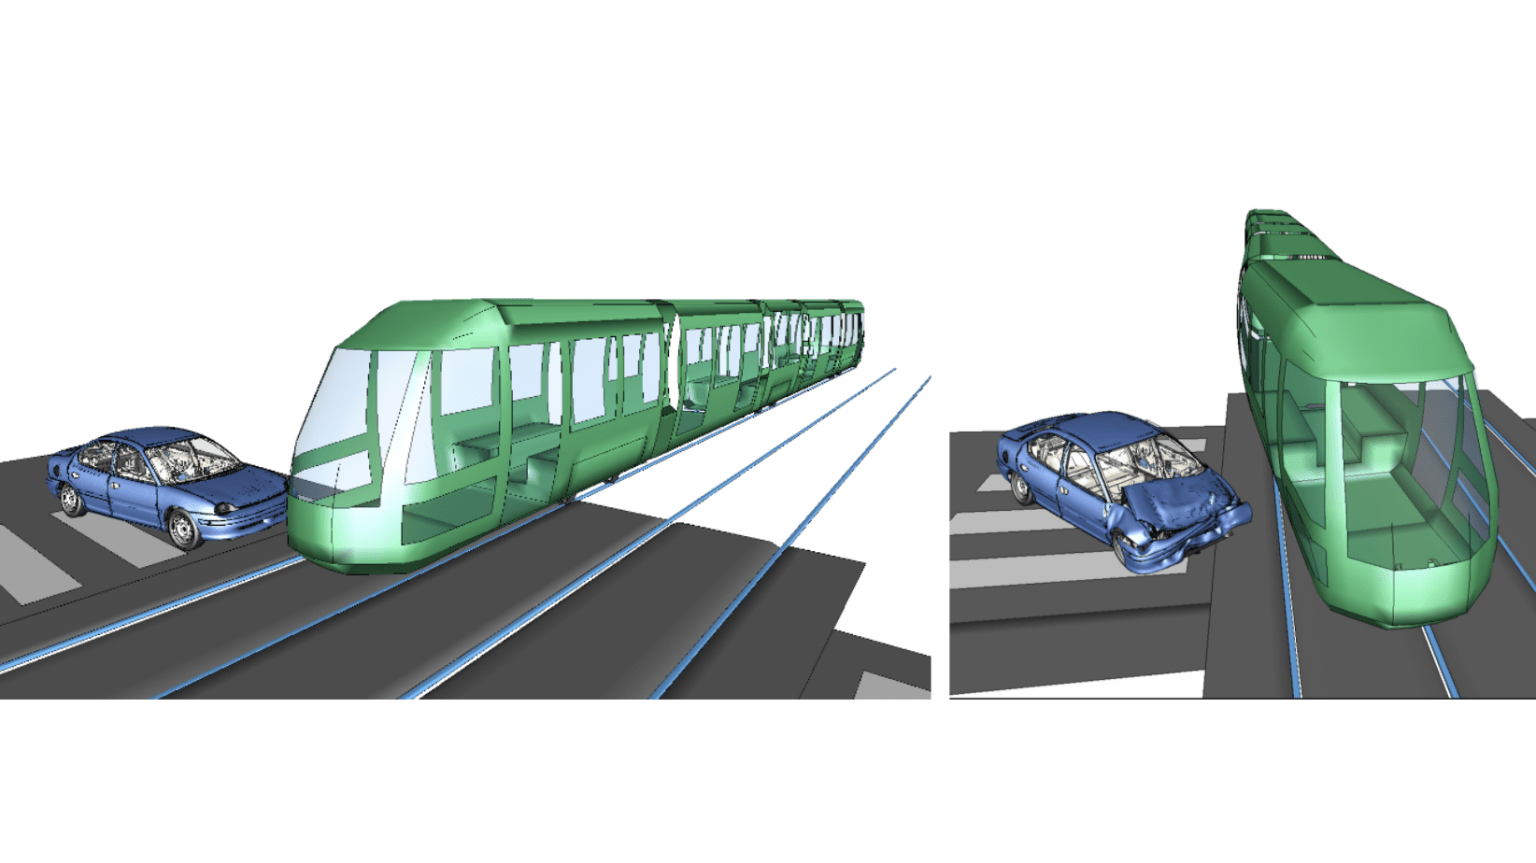 Accident reconstruction involving the derailment of a tramway.